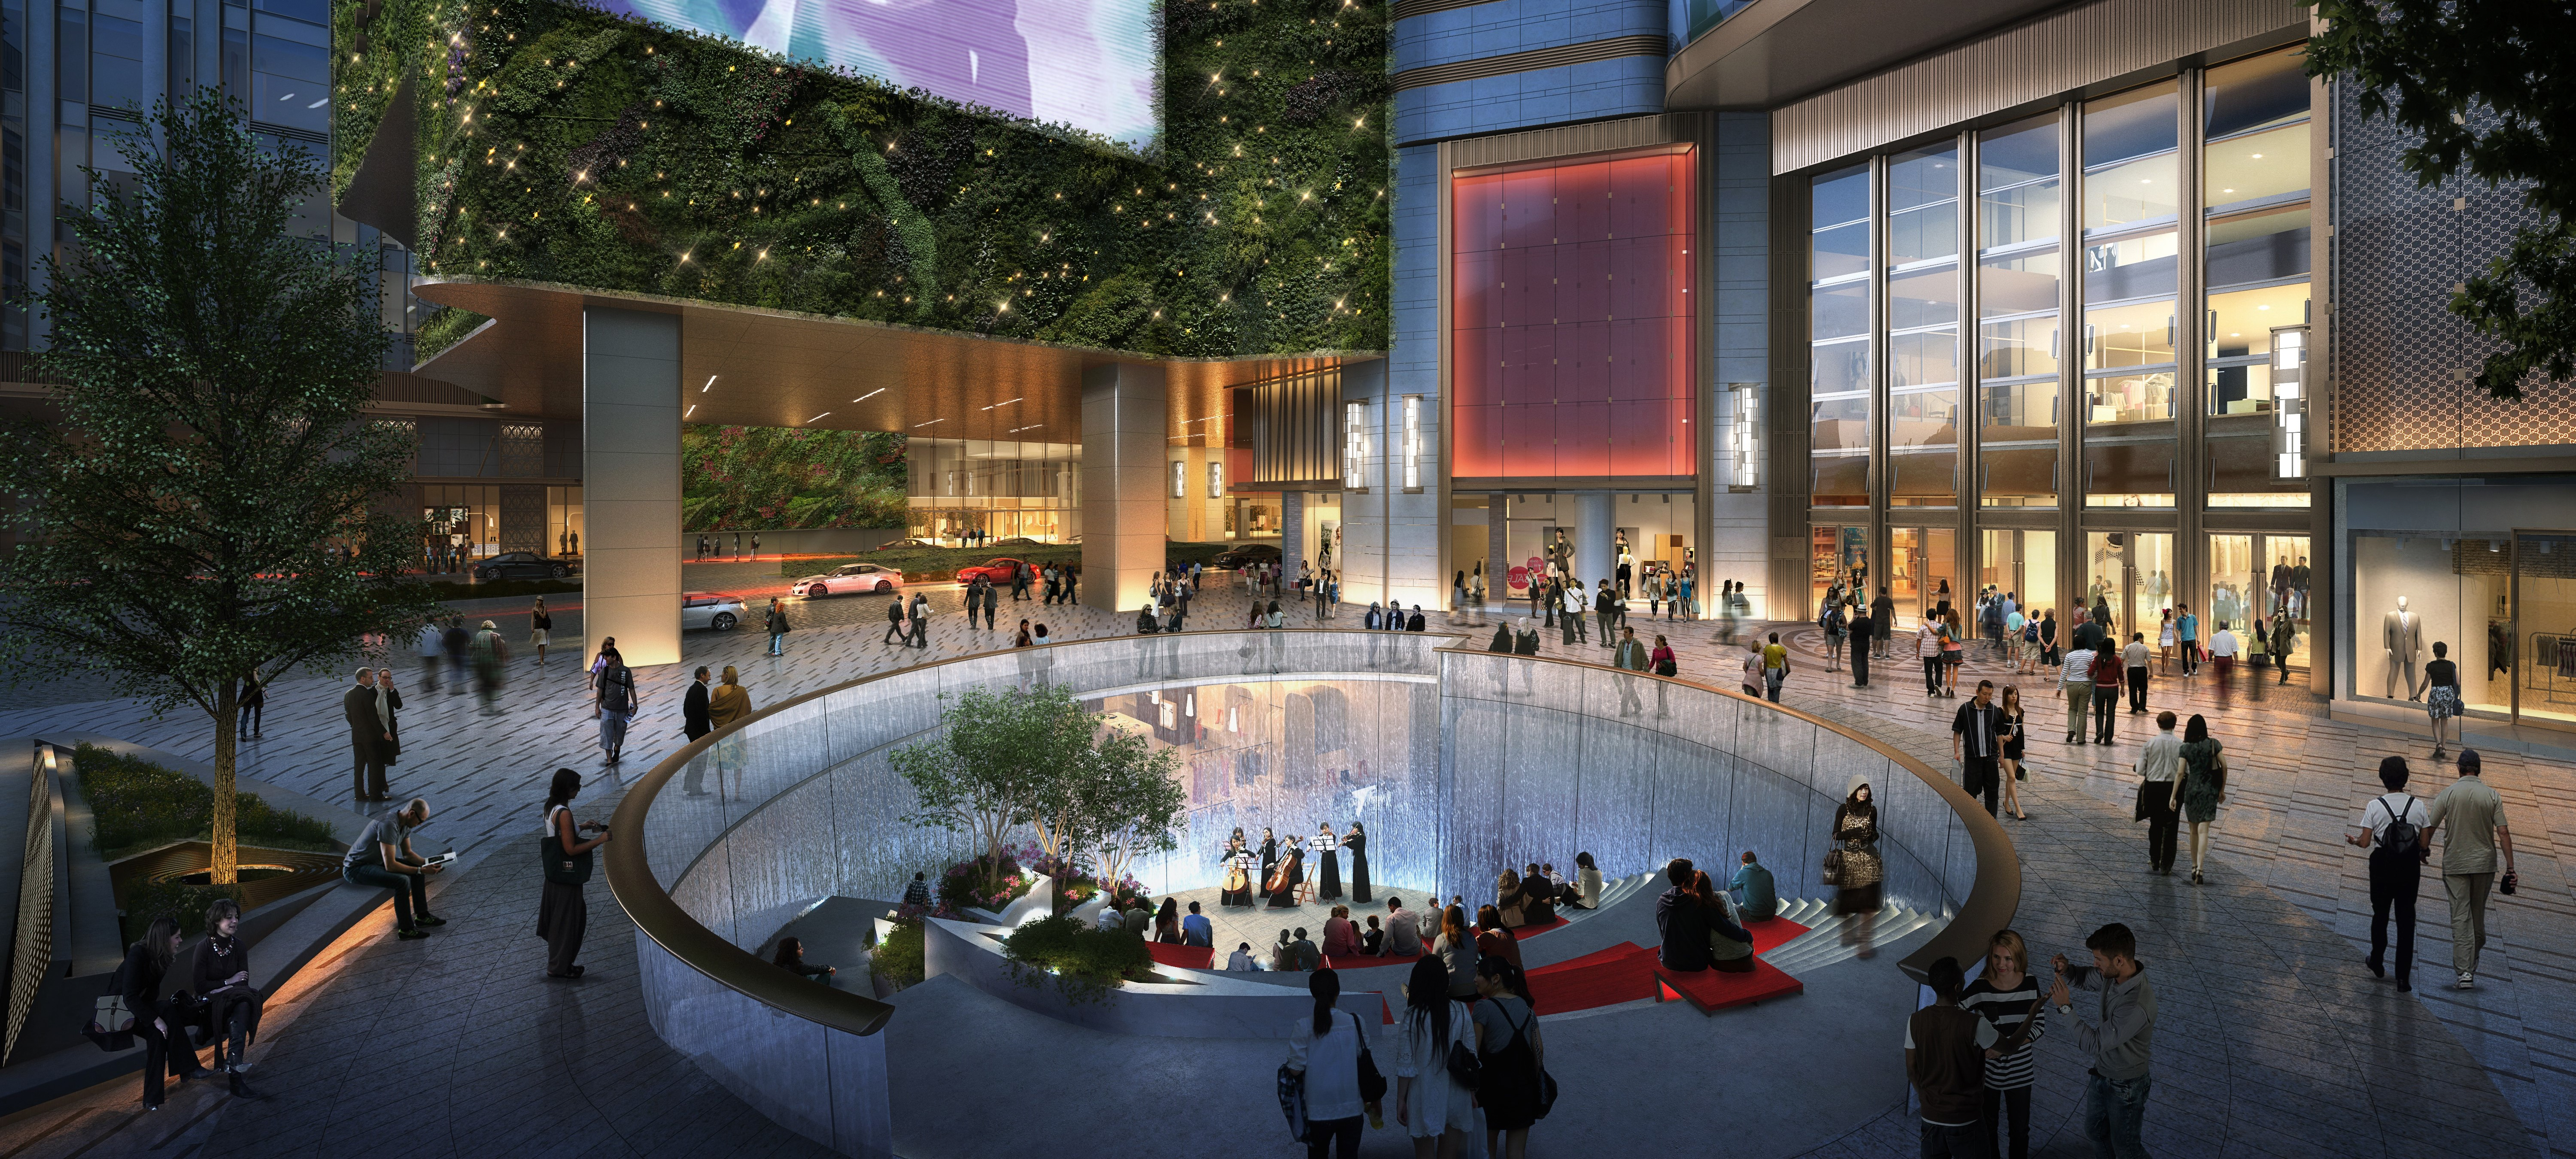 The outdoor space of K11 Musea includes a sunken plaza.